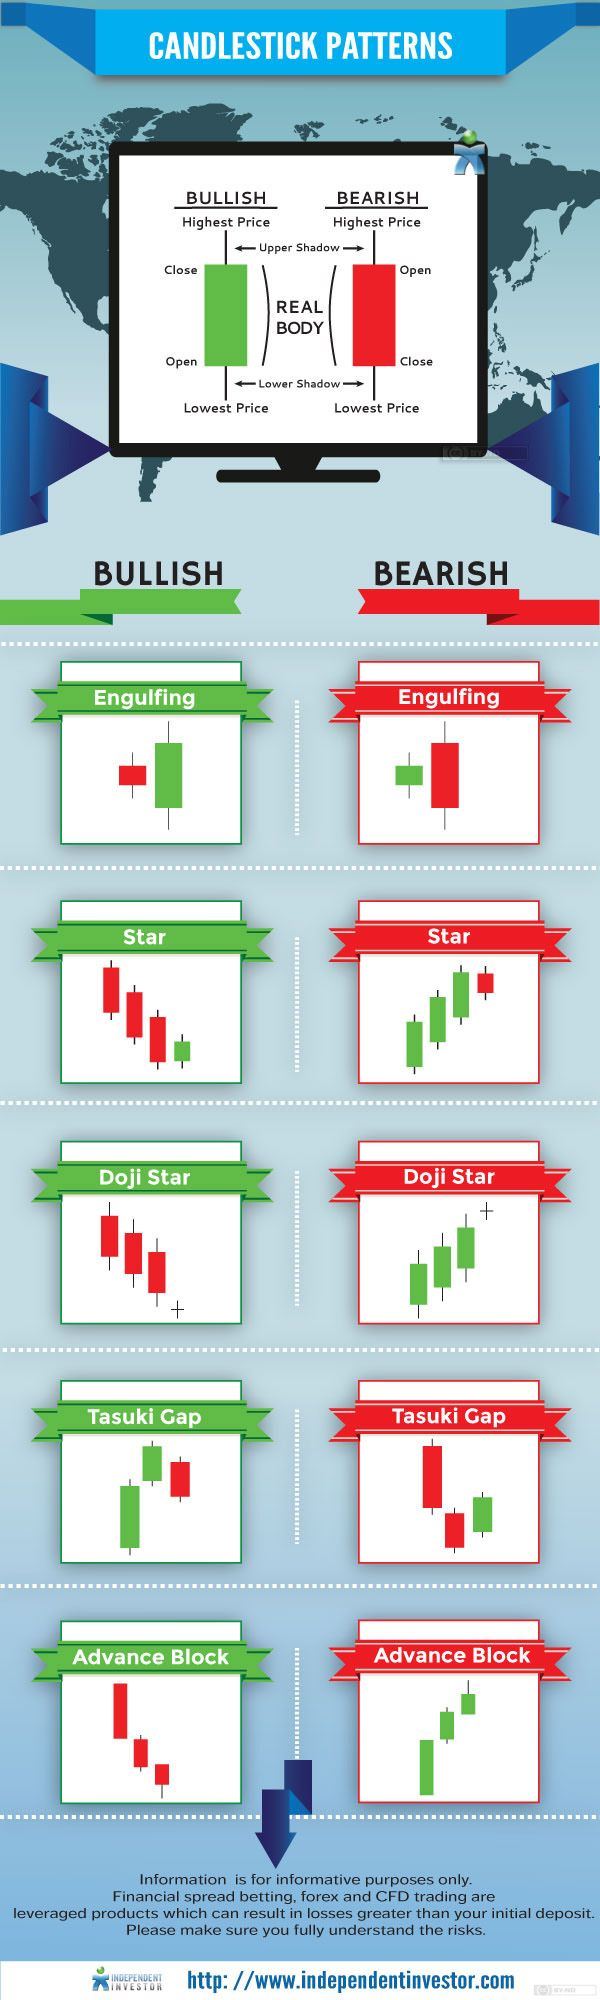 #candlestick_patterns #day_trading #independentinvestor